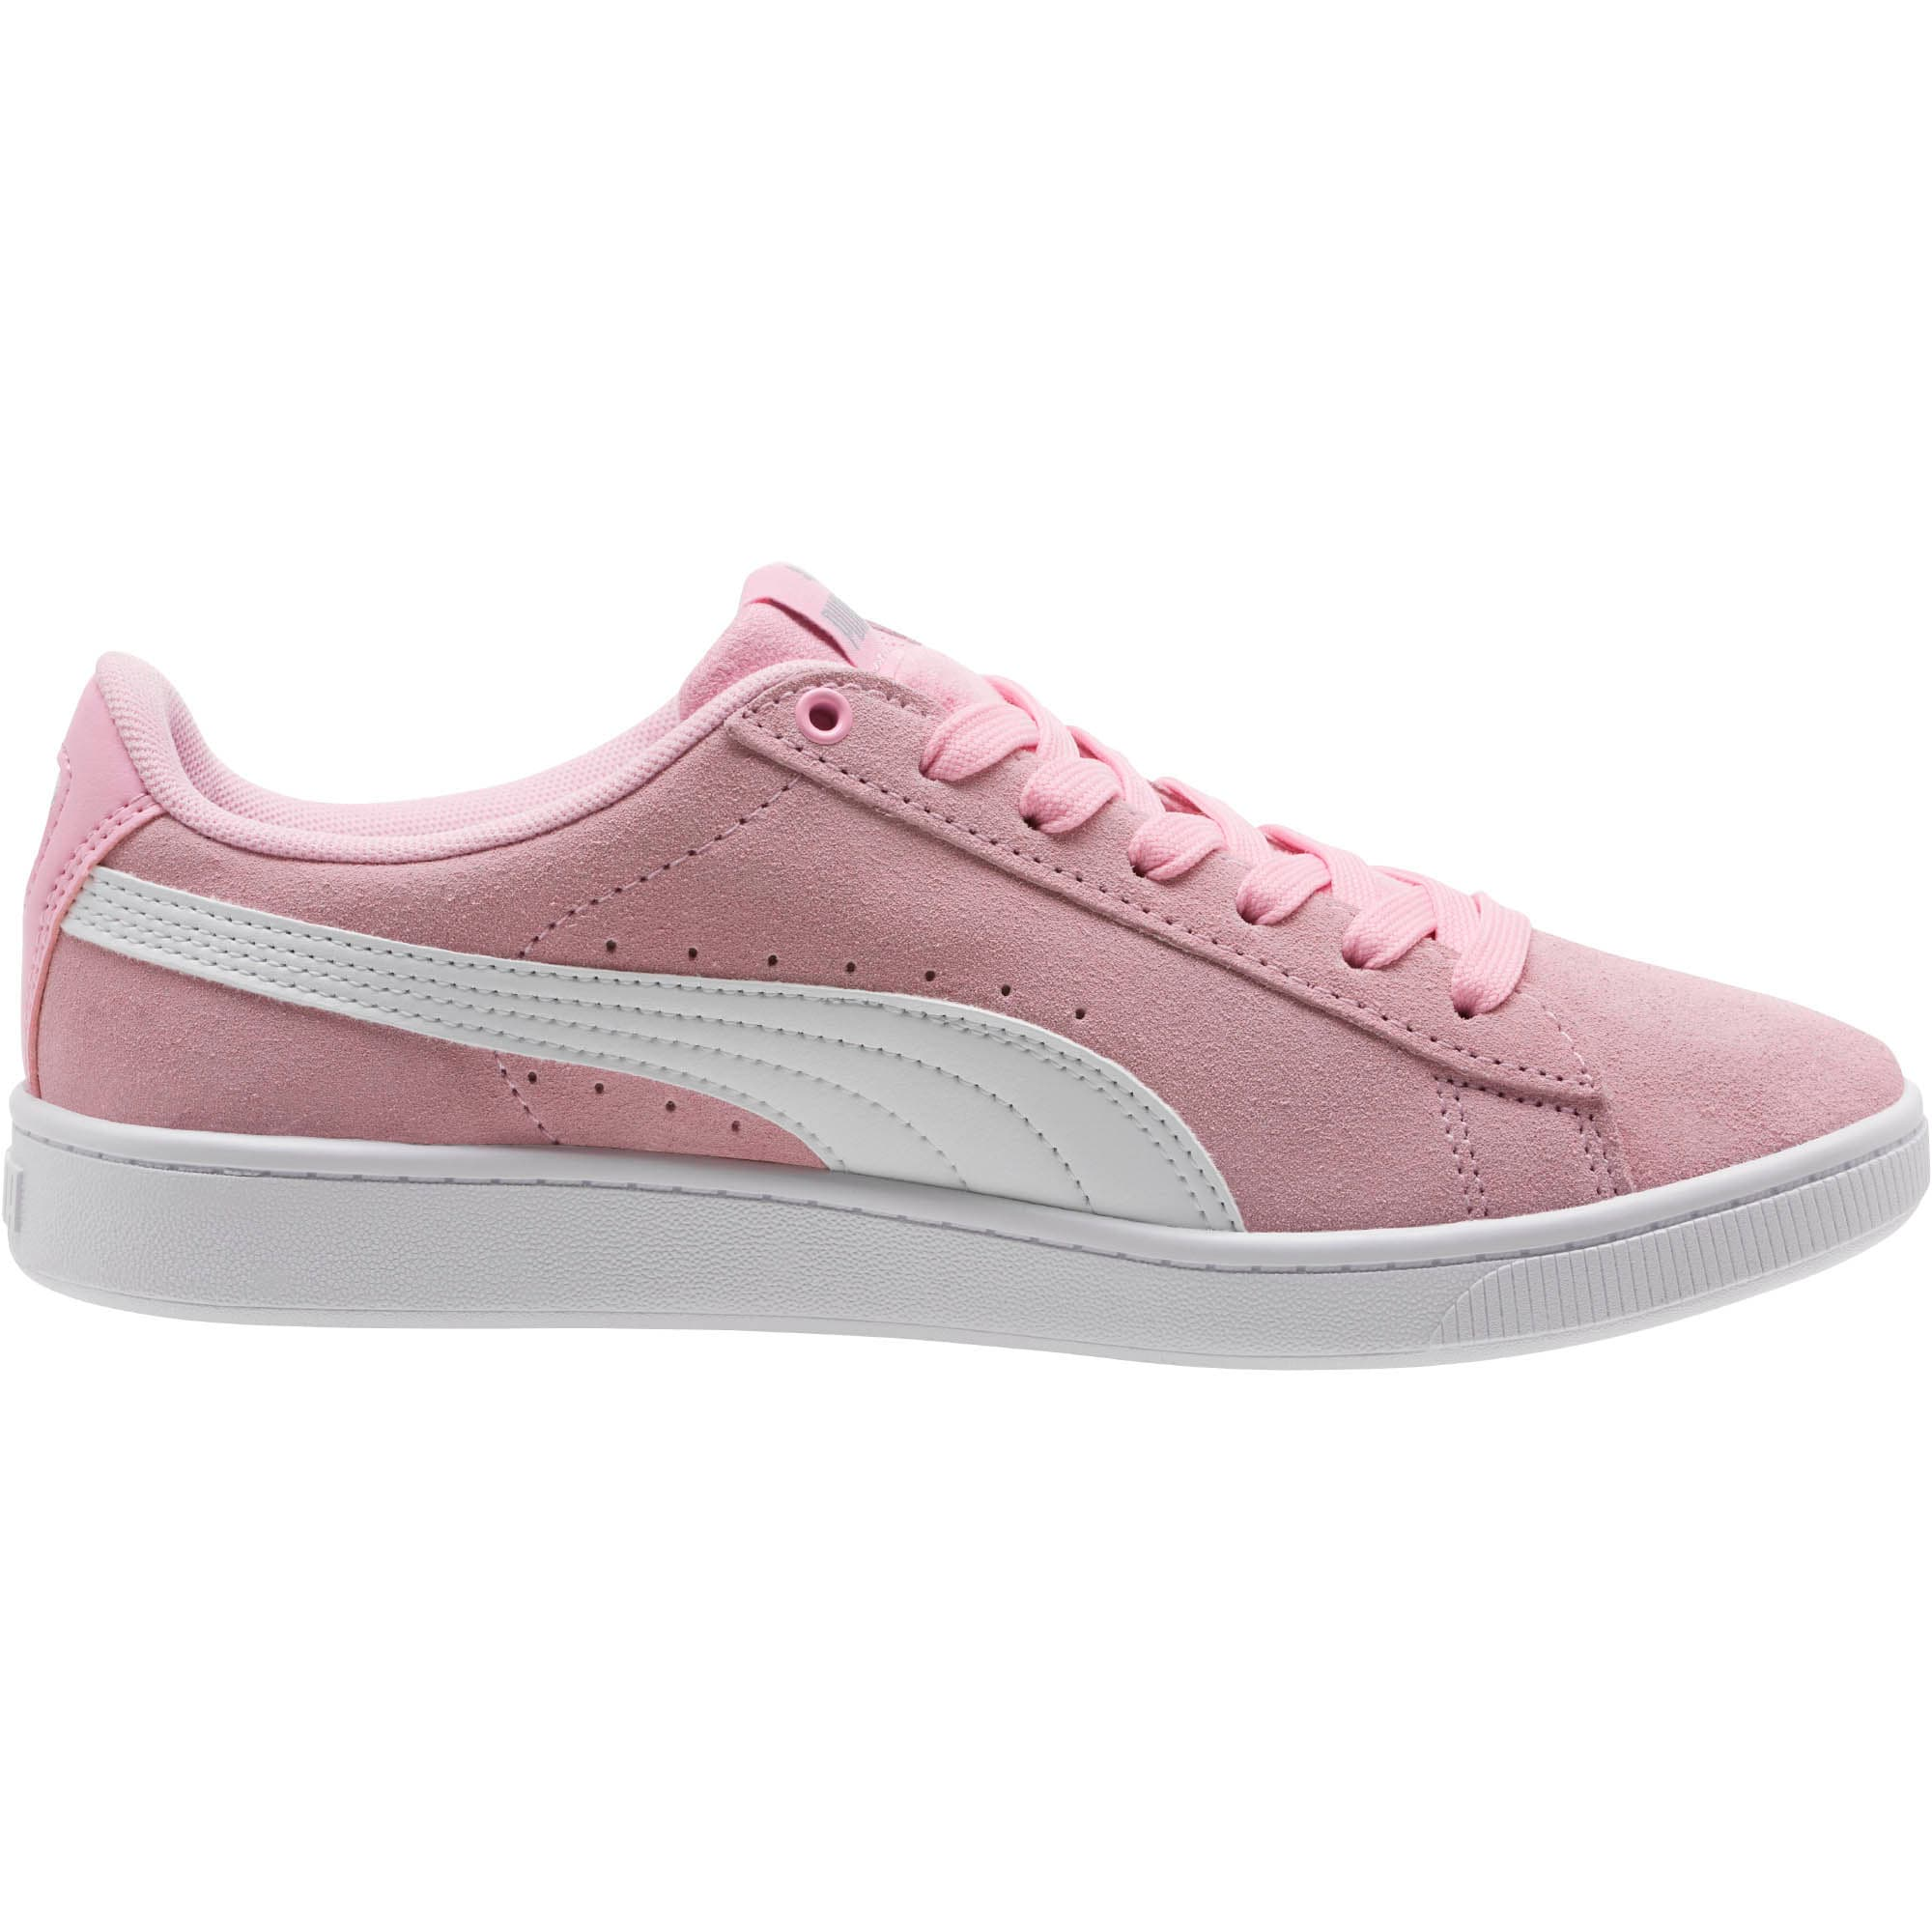 PUMA Vikky v2 Women's Sneakers, Pale Pink-Puma White-Silver, large